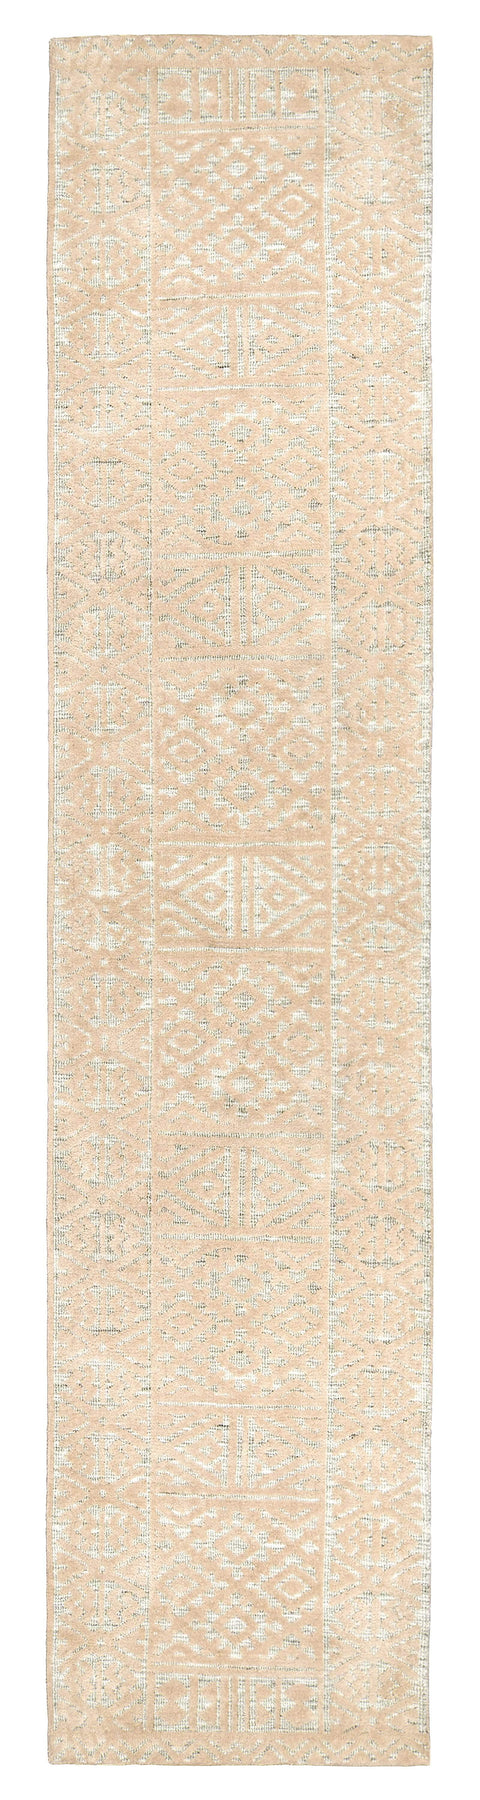 Kaia Beige Tribal Transitional Runner Rug